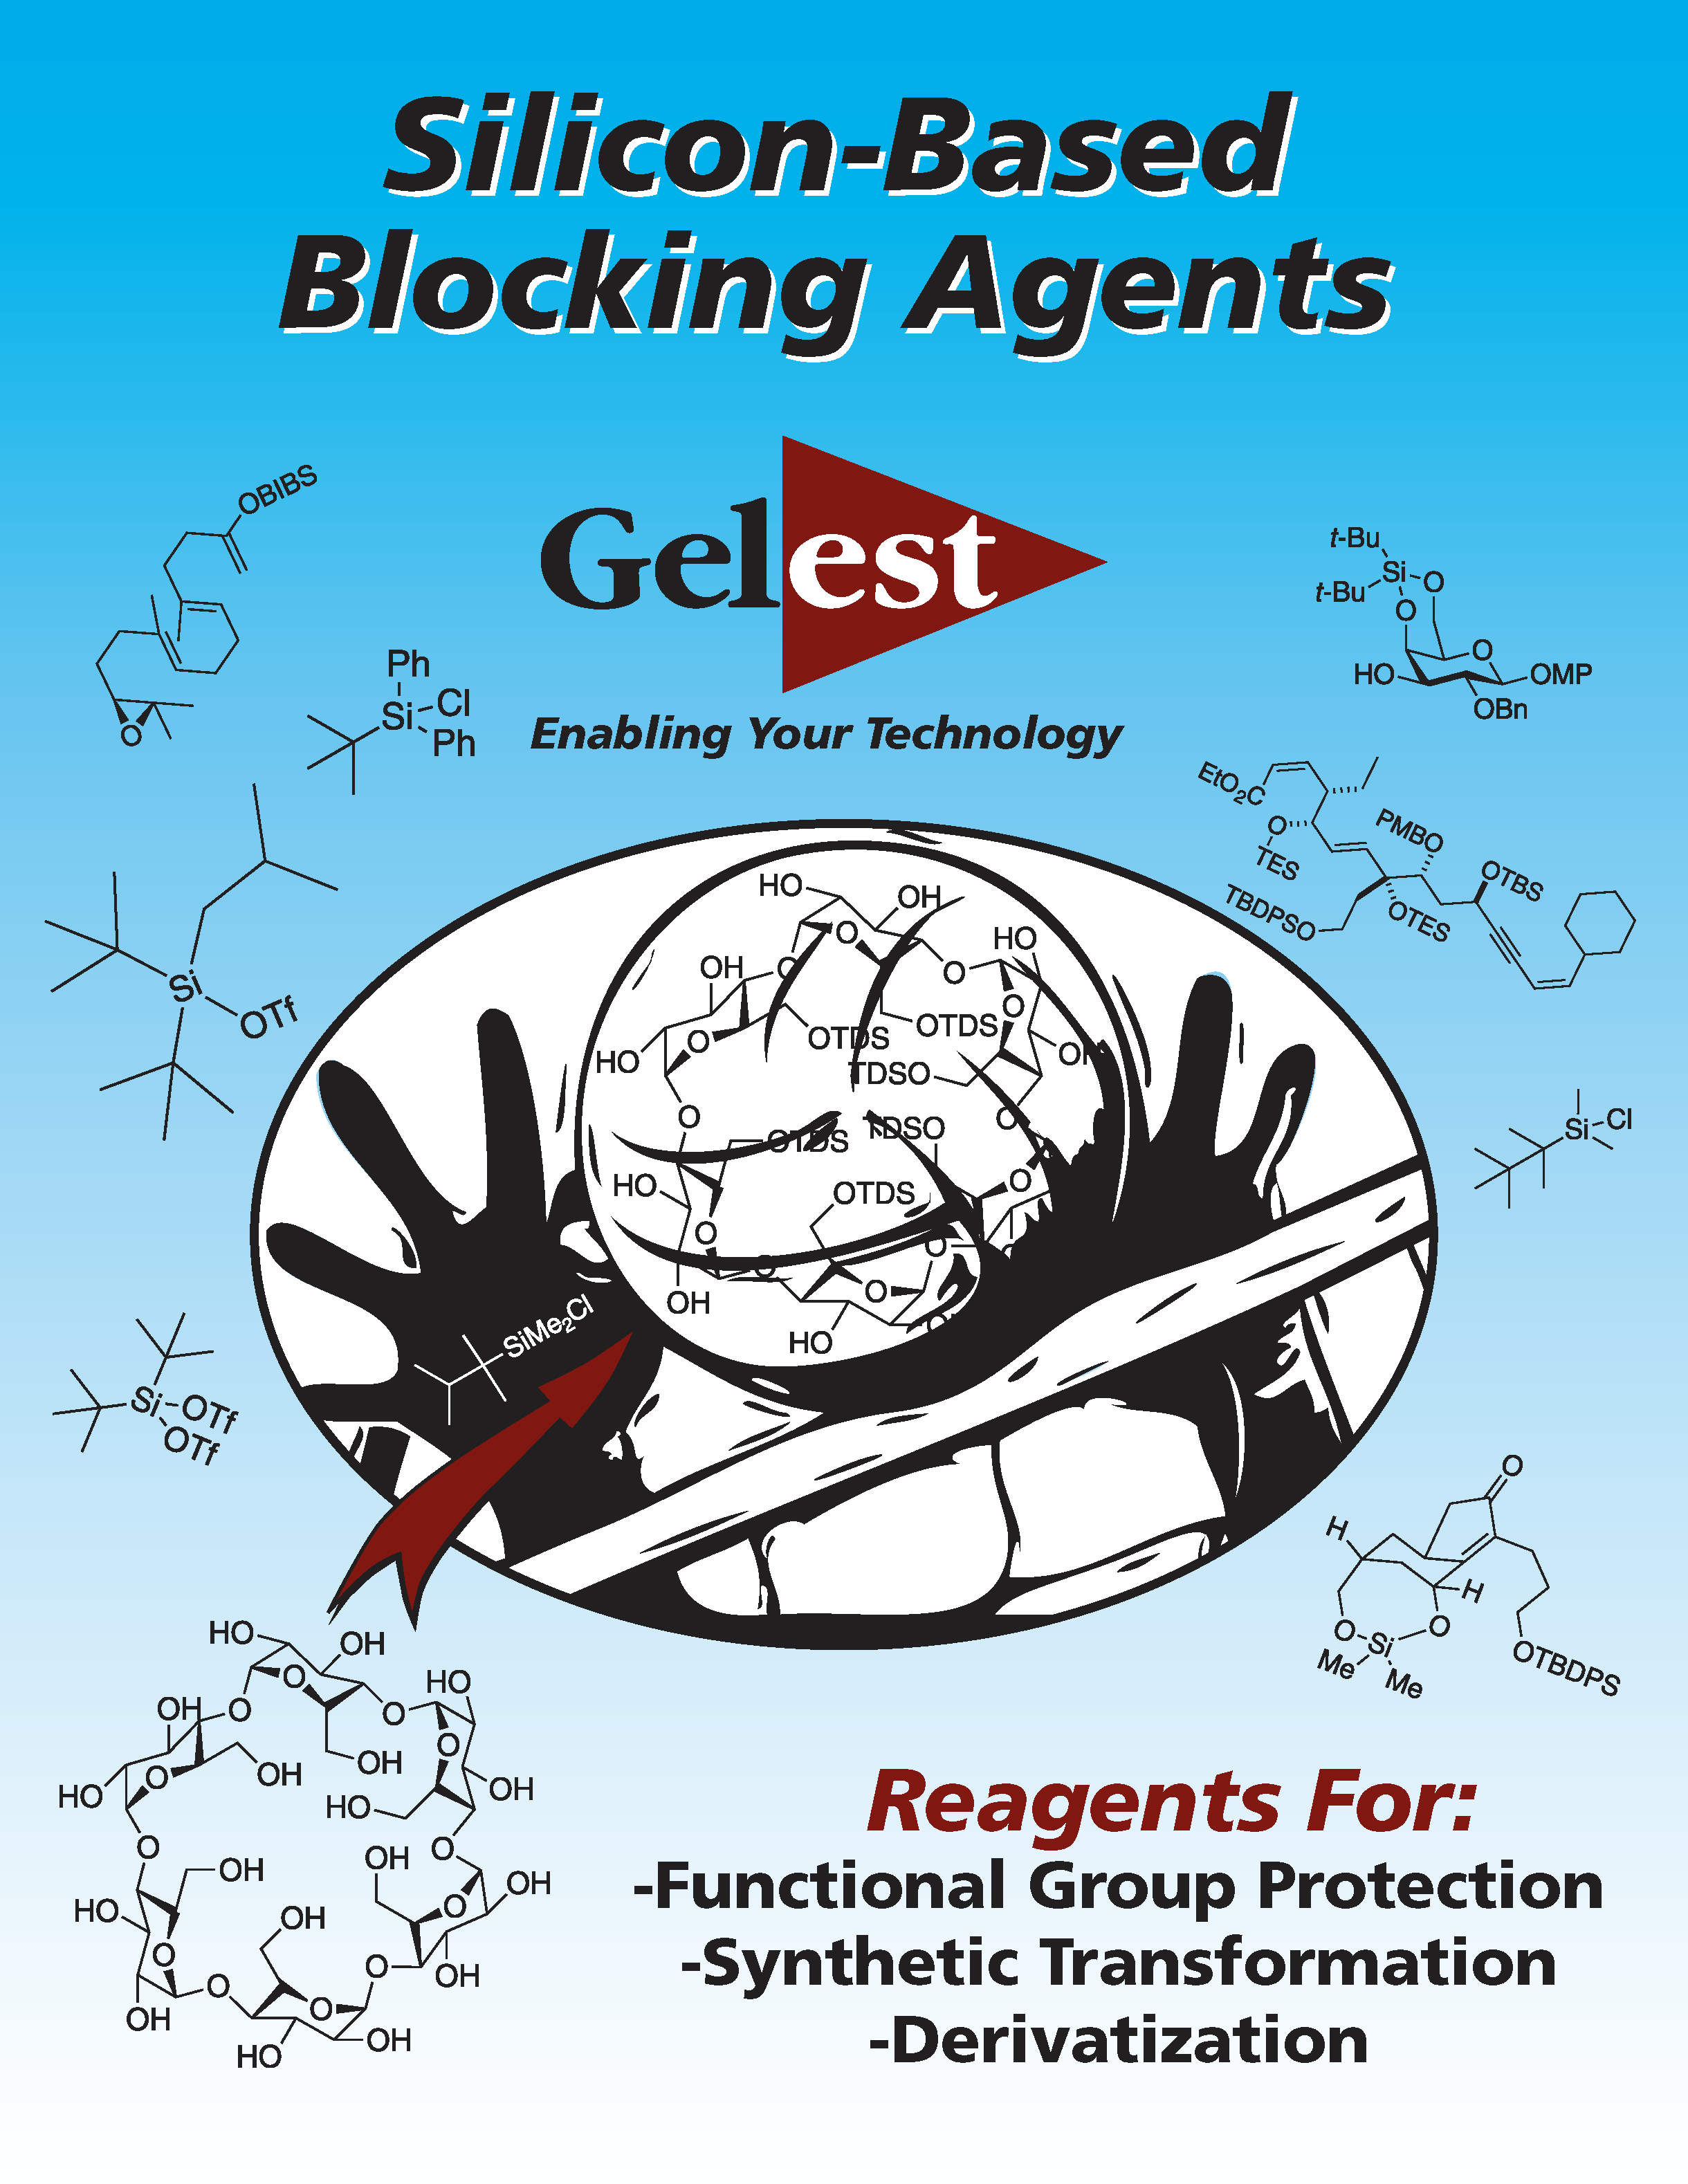 Silicon-Based Blocking Agents